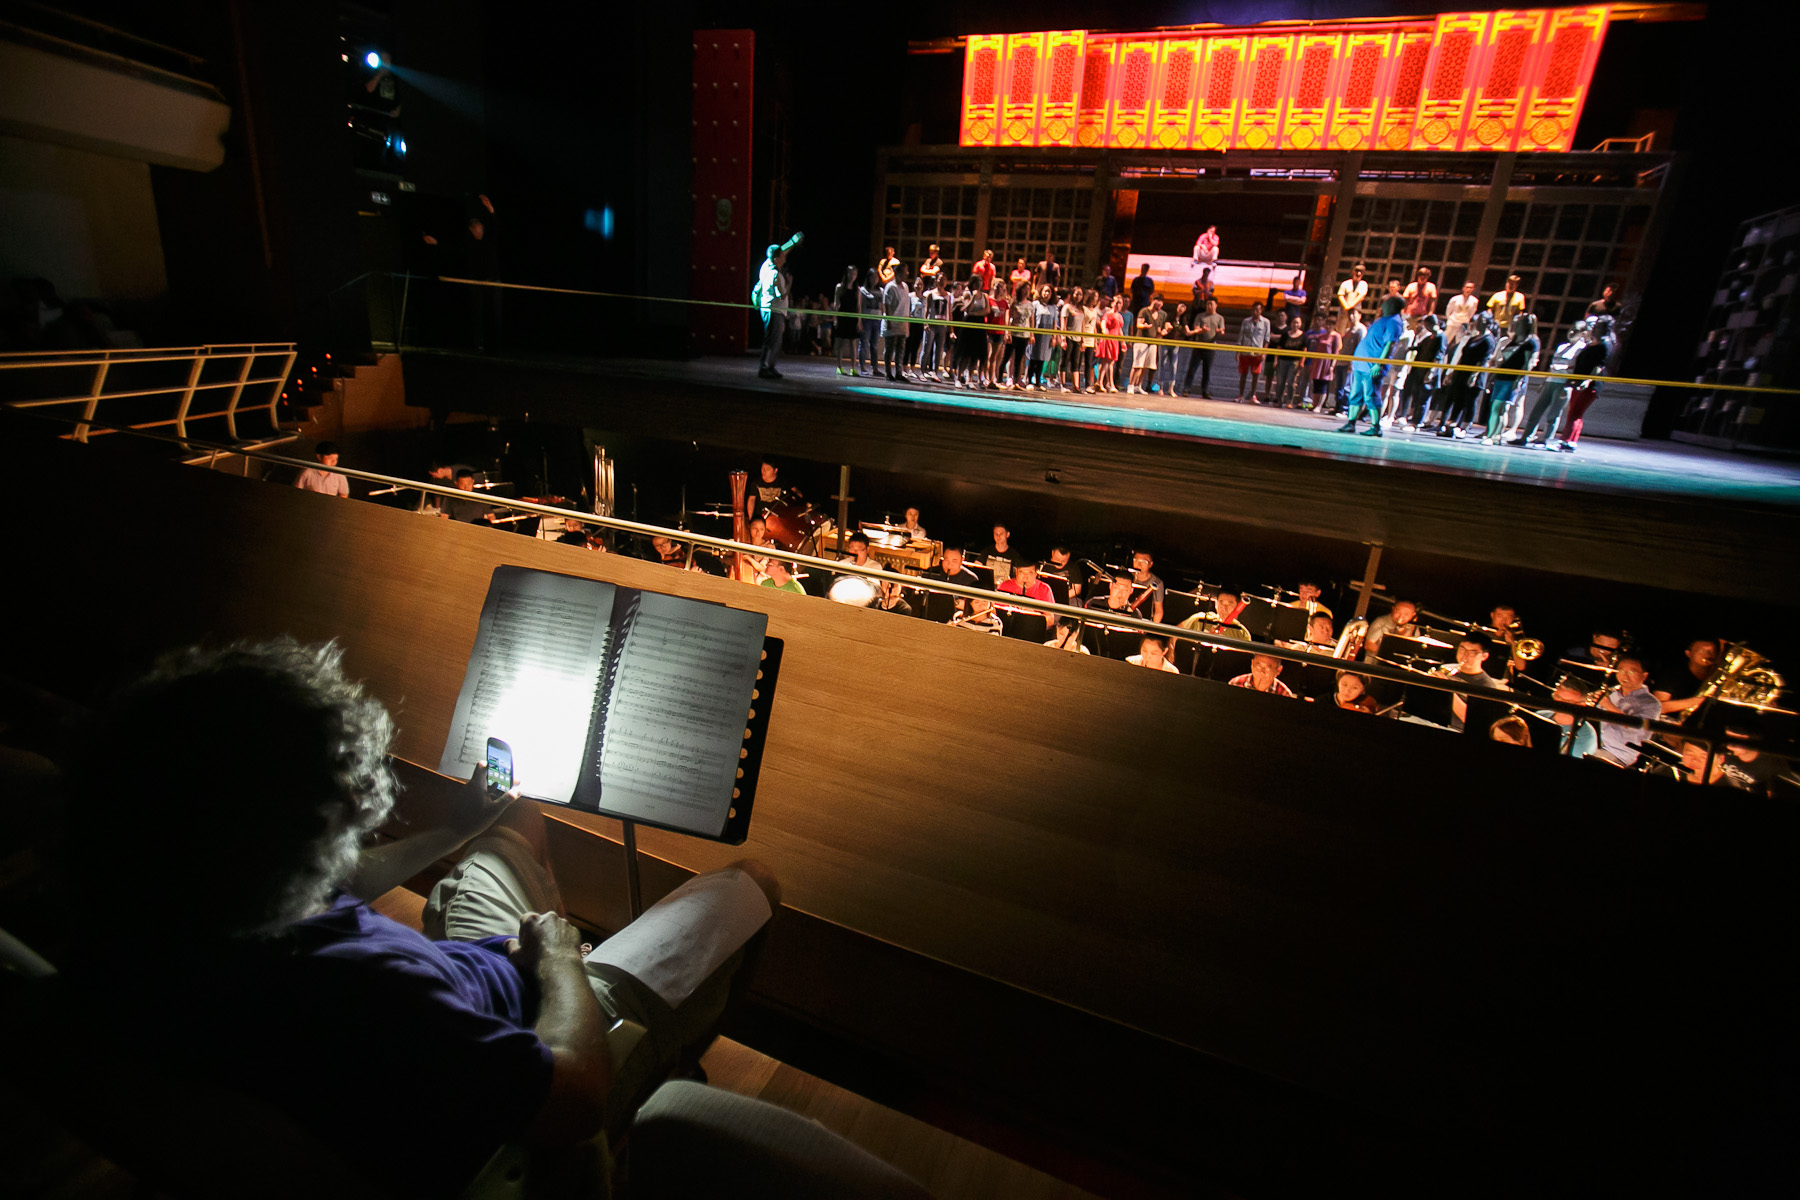 A man supervises music during the first rehearsal of China National Opera House production of Turandot in Cankarjev dom Cultural & Congress center in Ljubljana, Slovenia, Aug. 31, 2015.